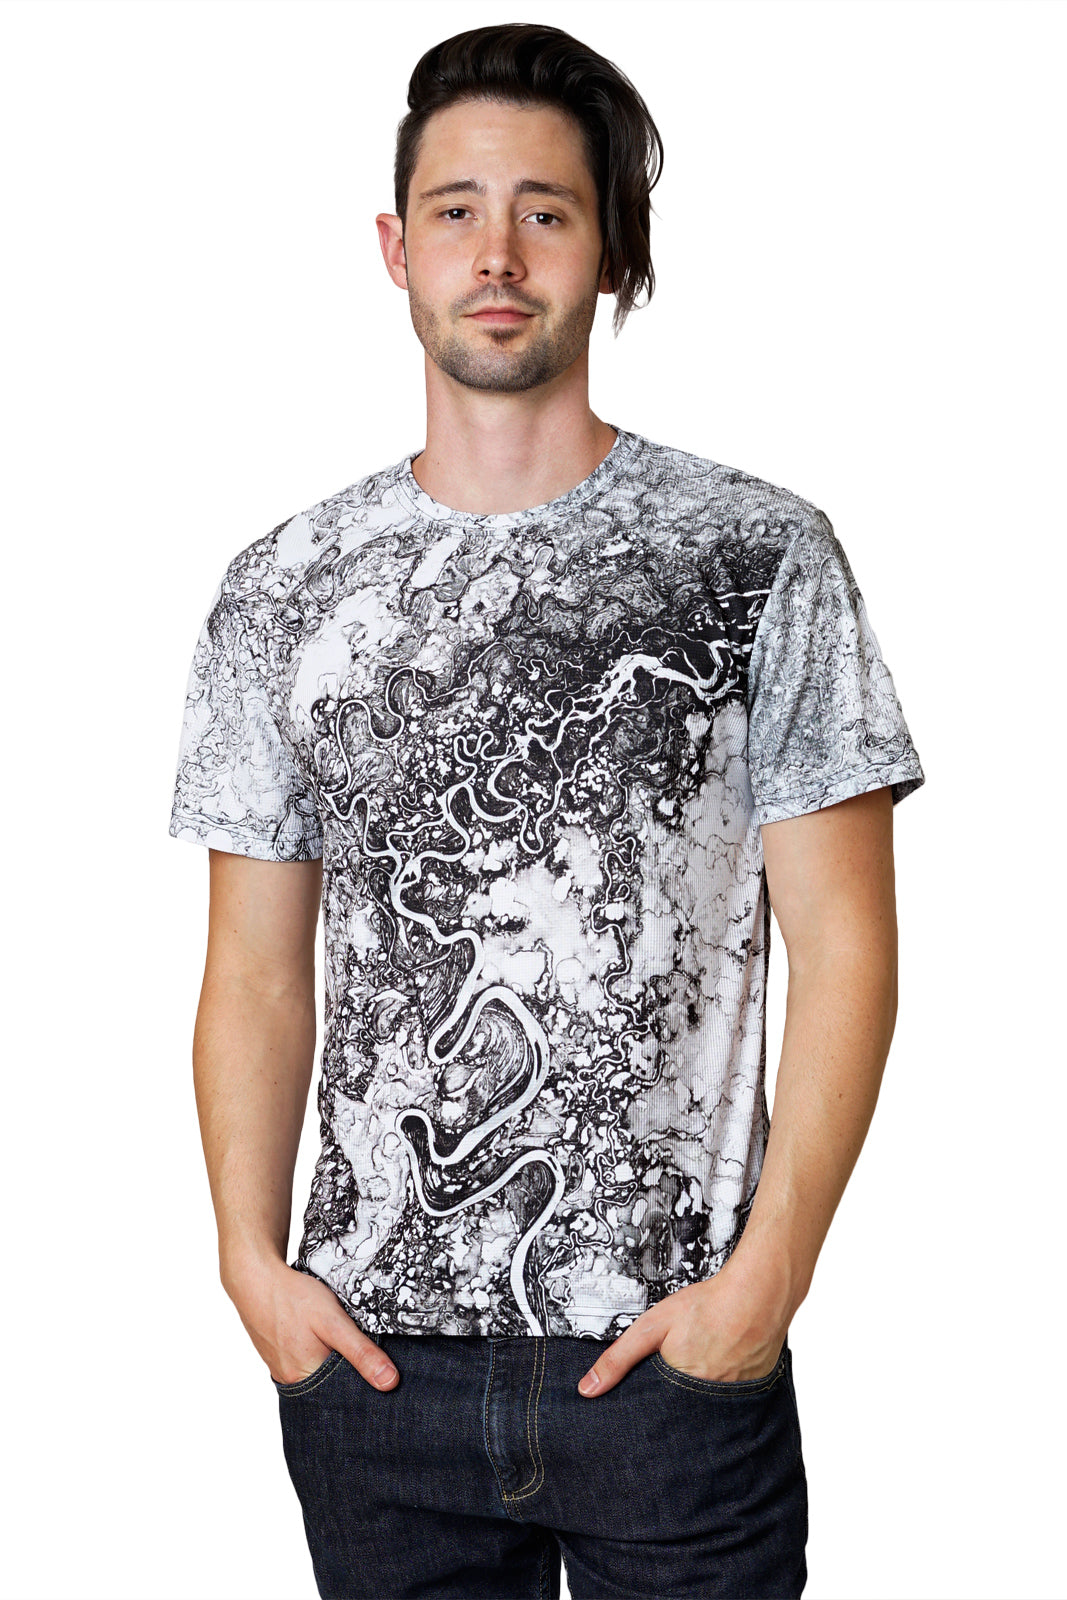 Mens Shortsleeve T-shirt-Nature Inspired Clothing-Earth Image Apparel-Mayn River